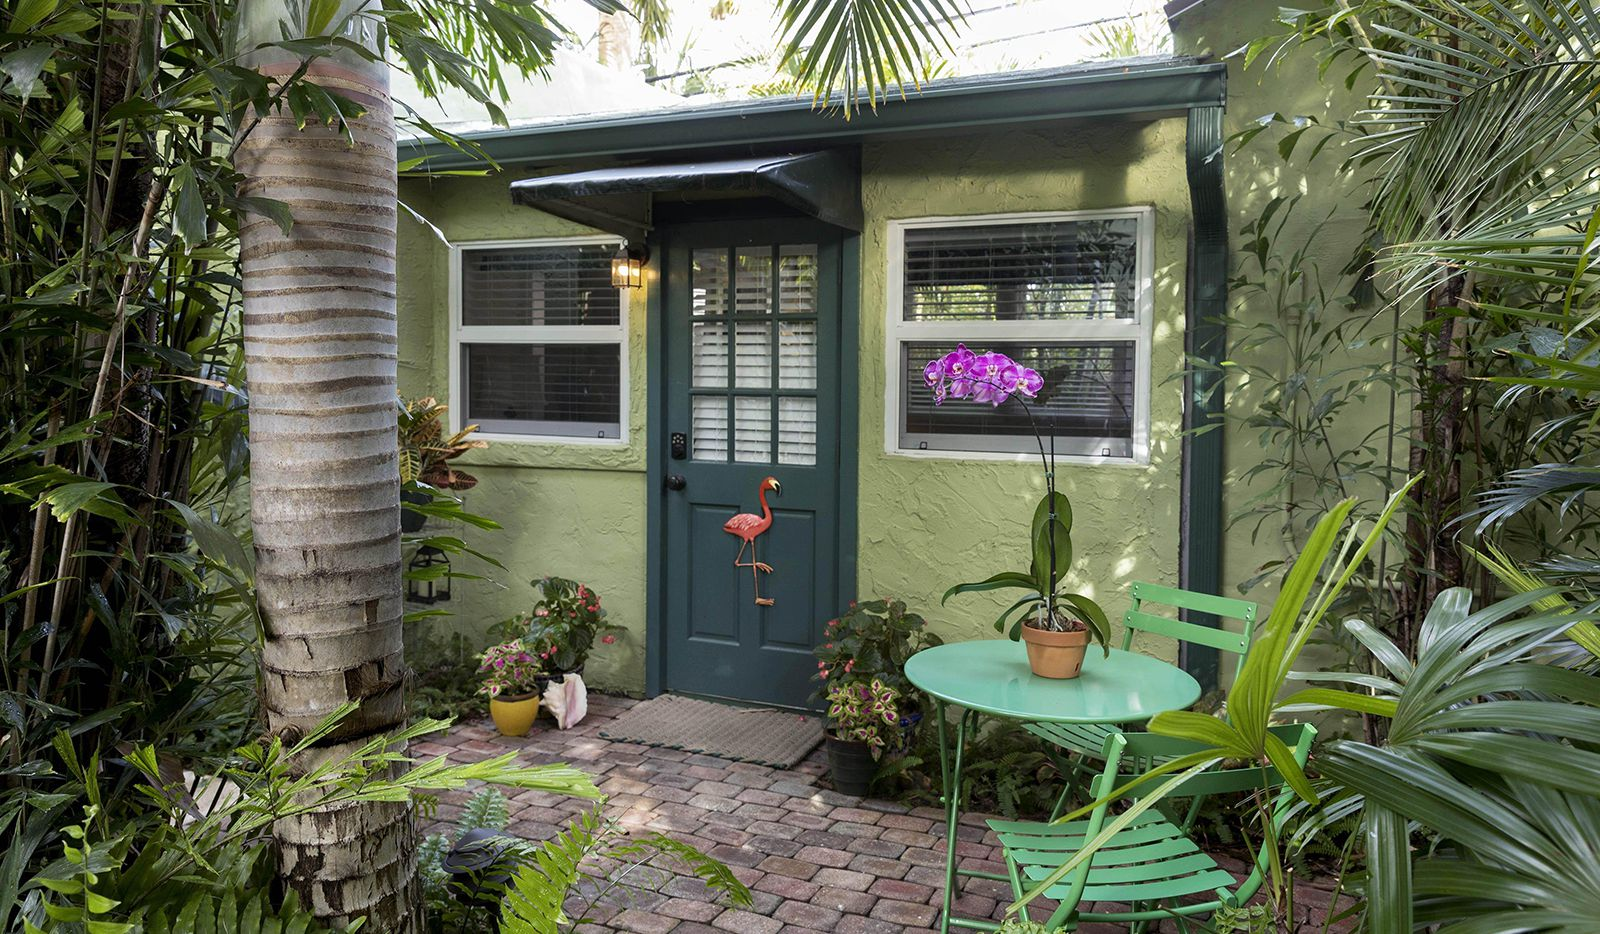 An Airbnb in the Flamingo Park neighborhood in West Palm Beach, Fla.